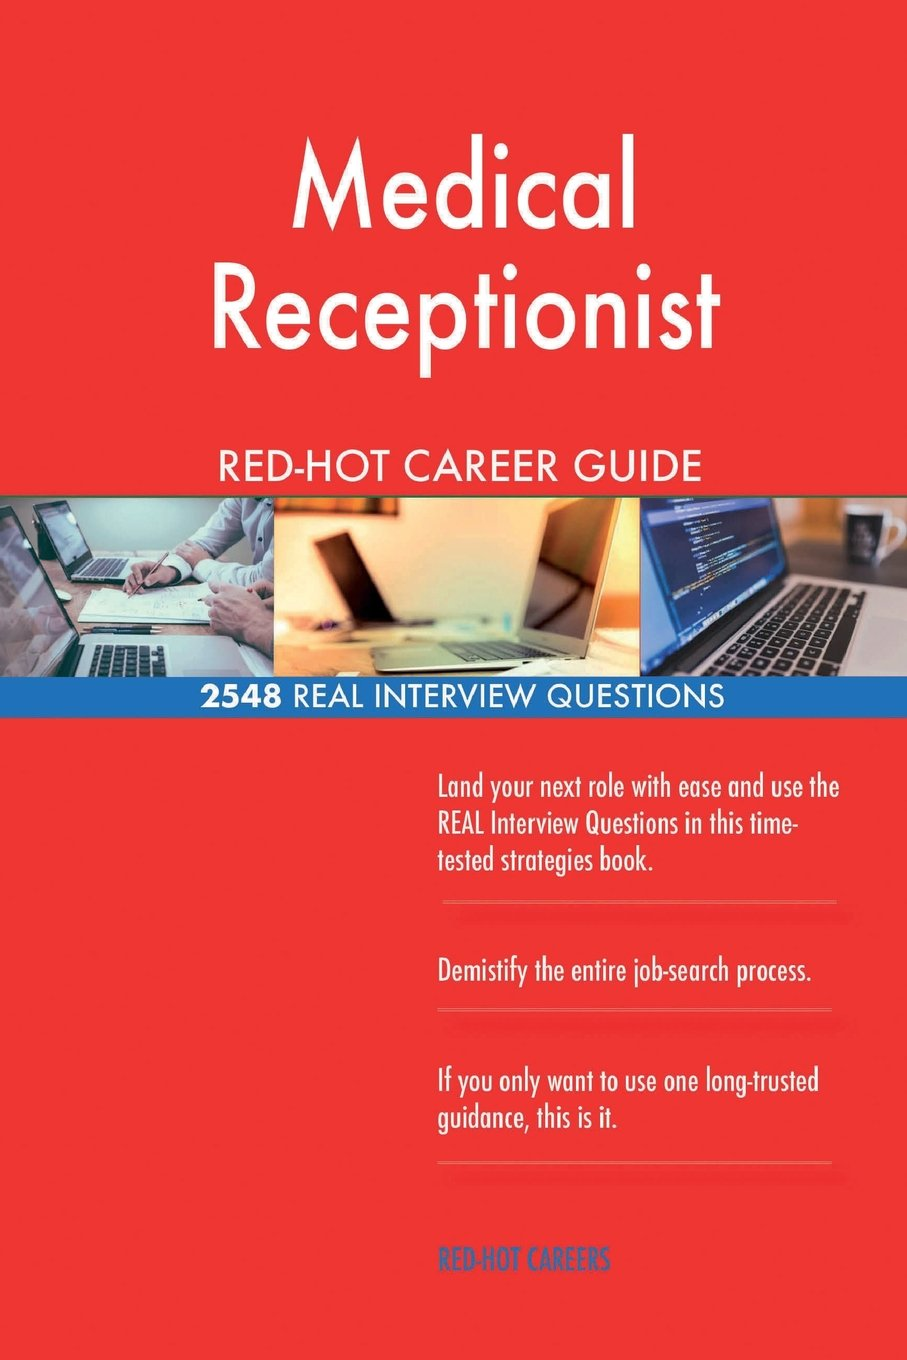 Medical Receptionist RED HOT Career Guide 2548 REAL Interview Questions Paperback May 26 2018